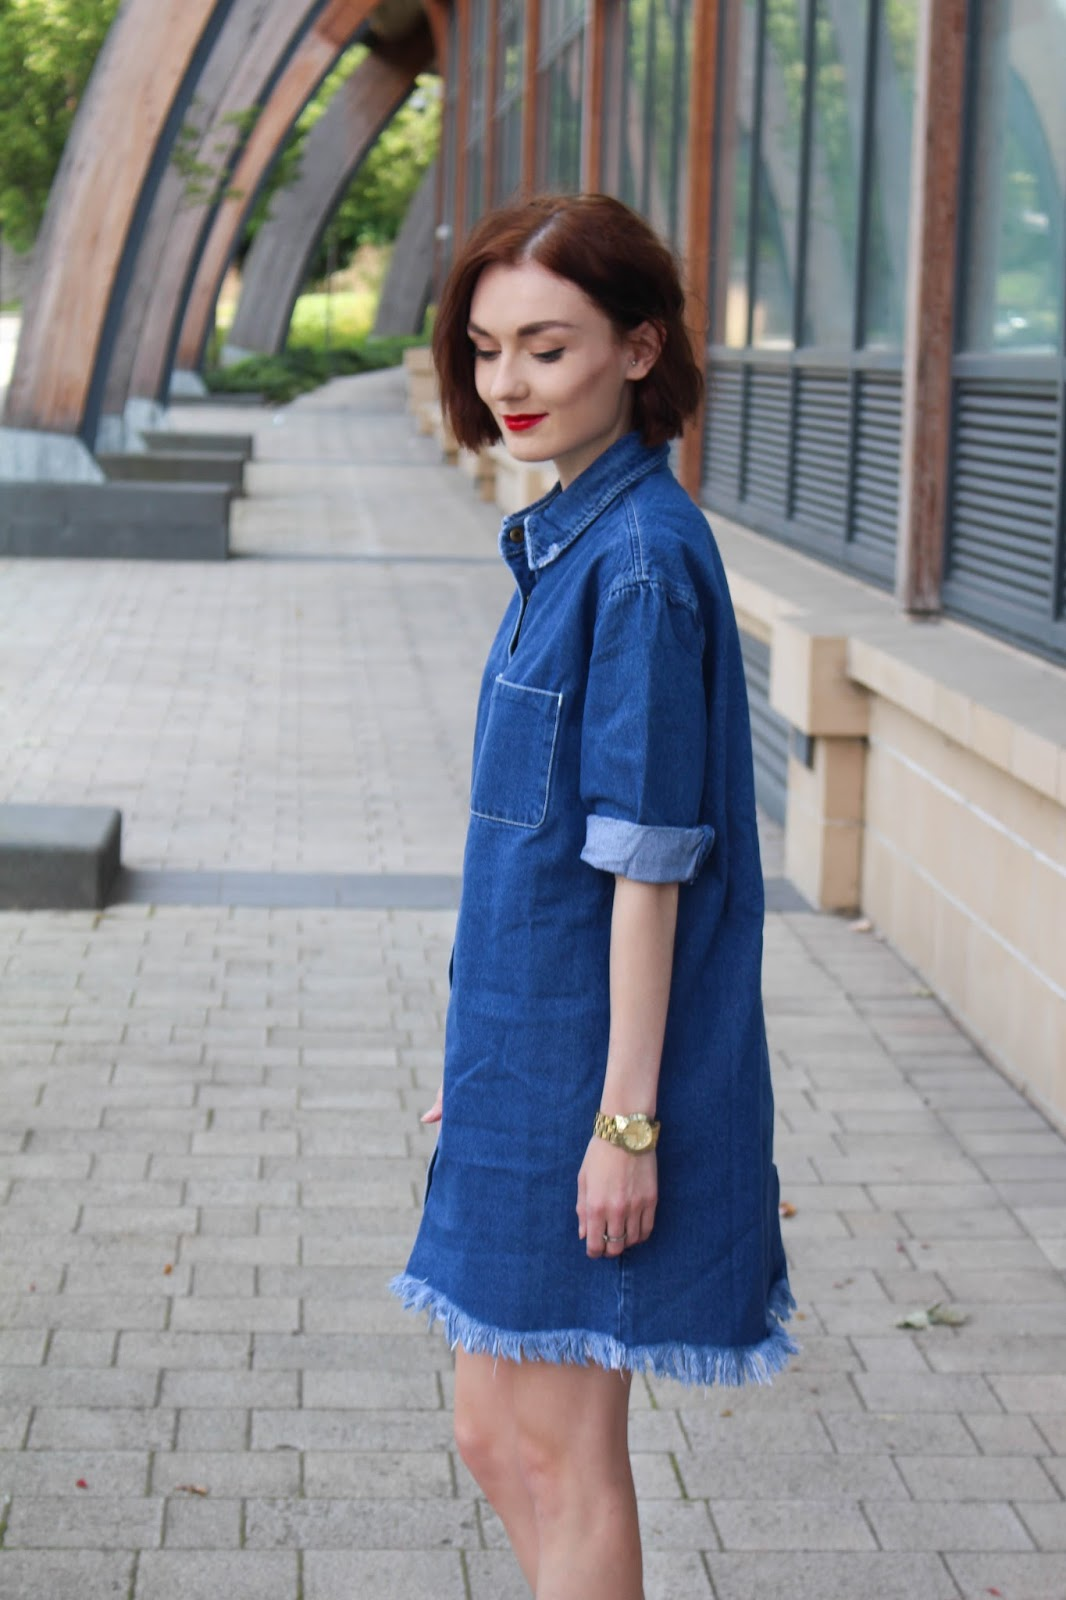 How To Wear A Denim Dress | The Jeans Blog